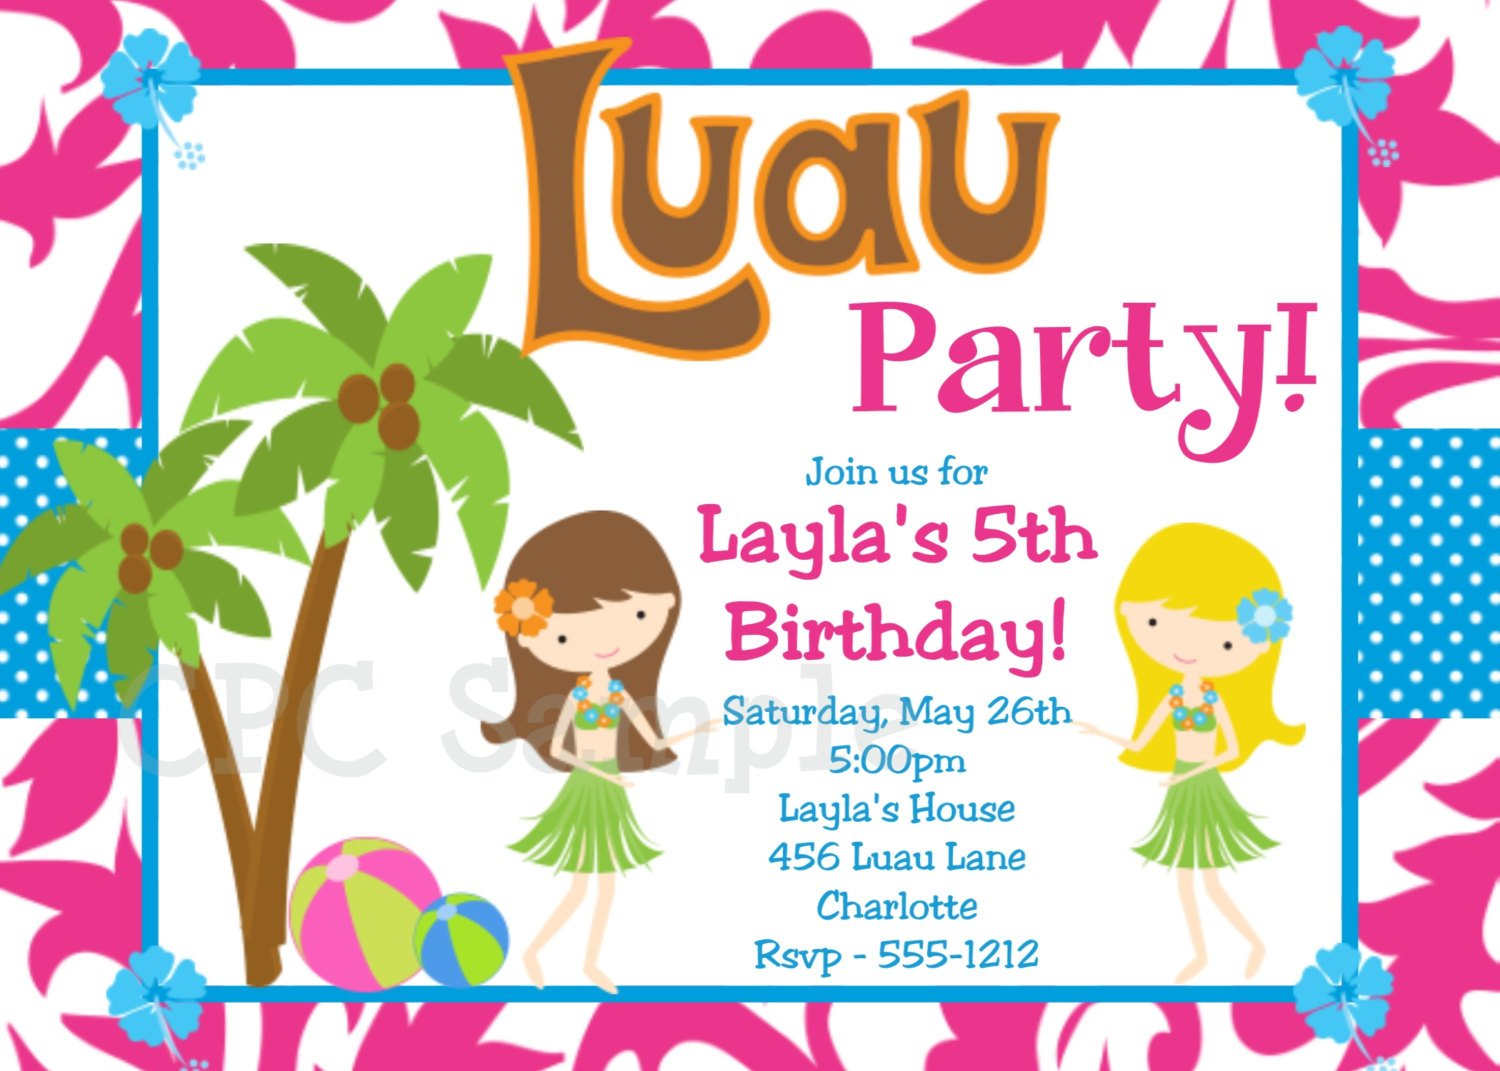 5th Luau Birthday Party Invitation Wording